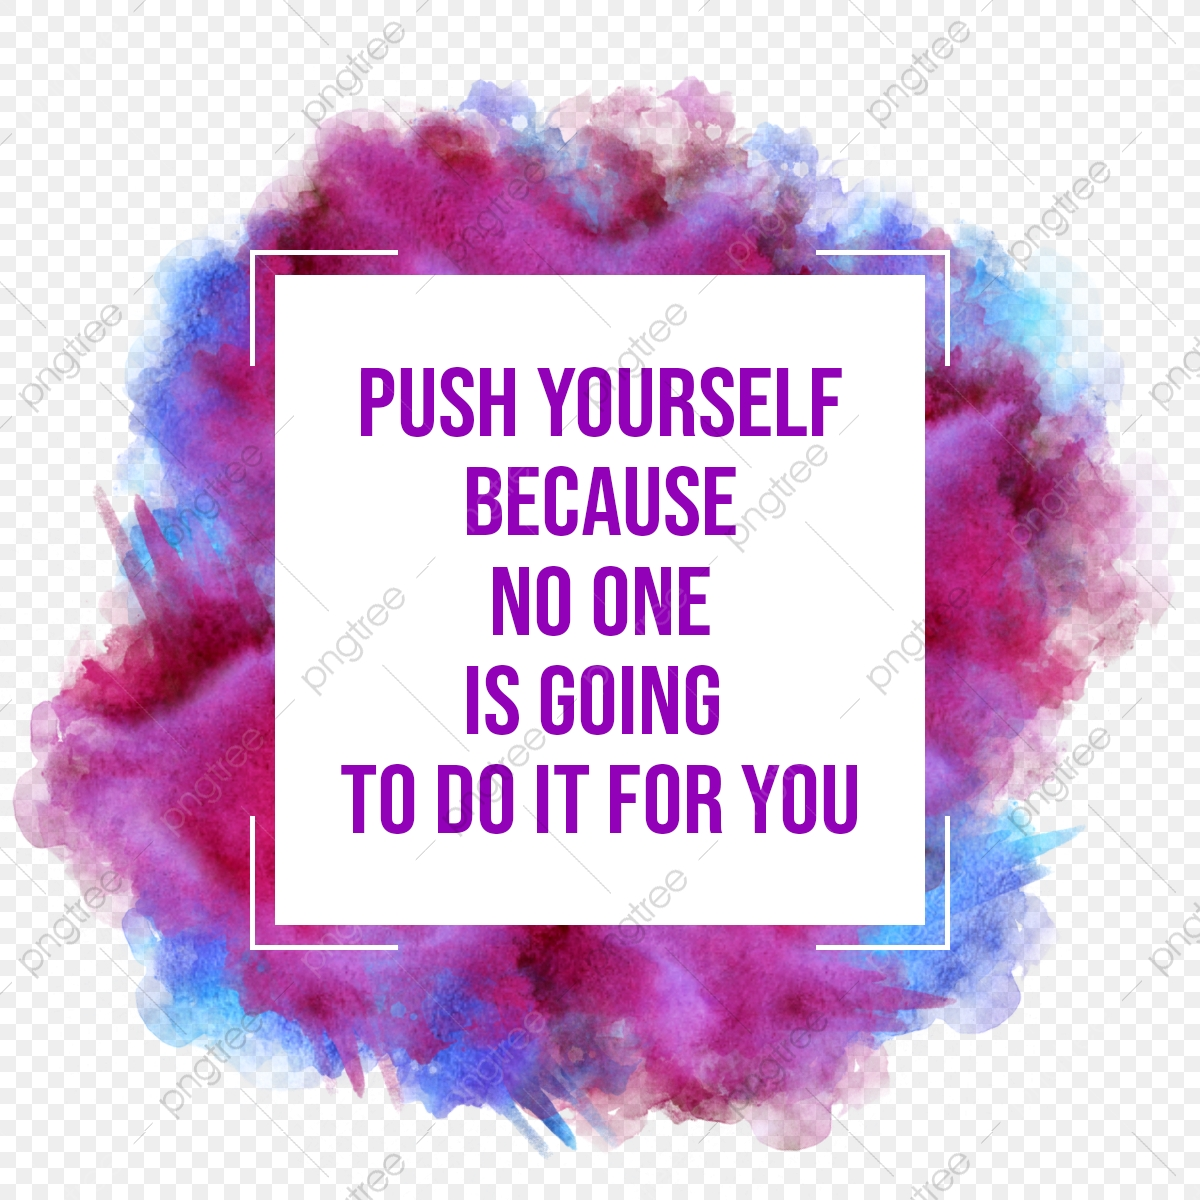 Abstract Frame Background With Inspirational Quotes Saying Push